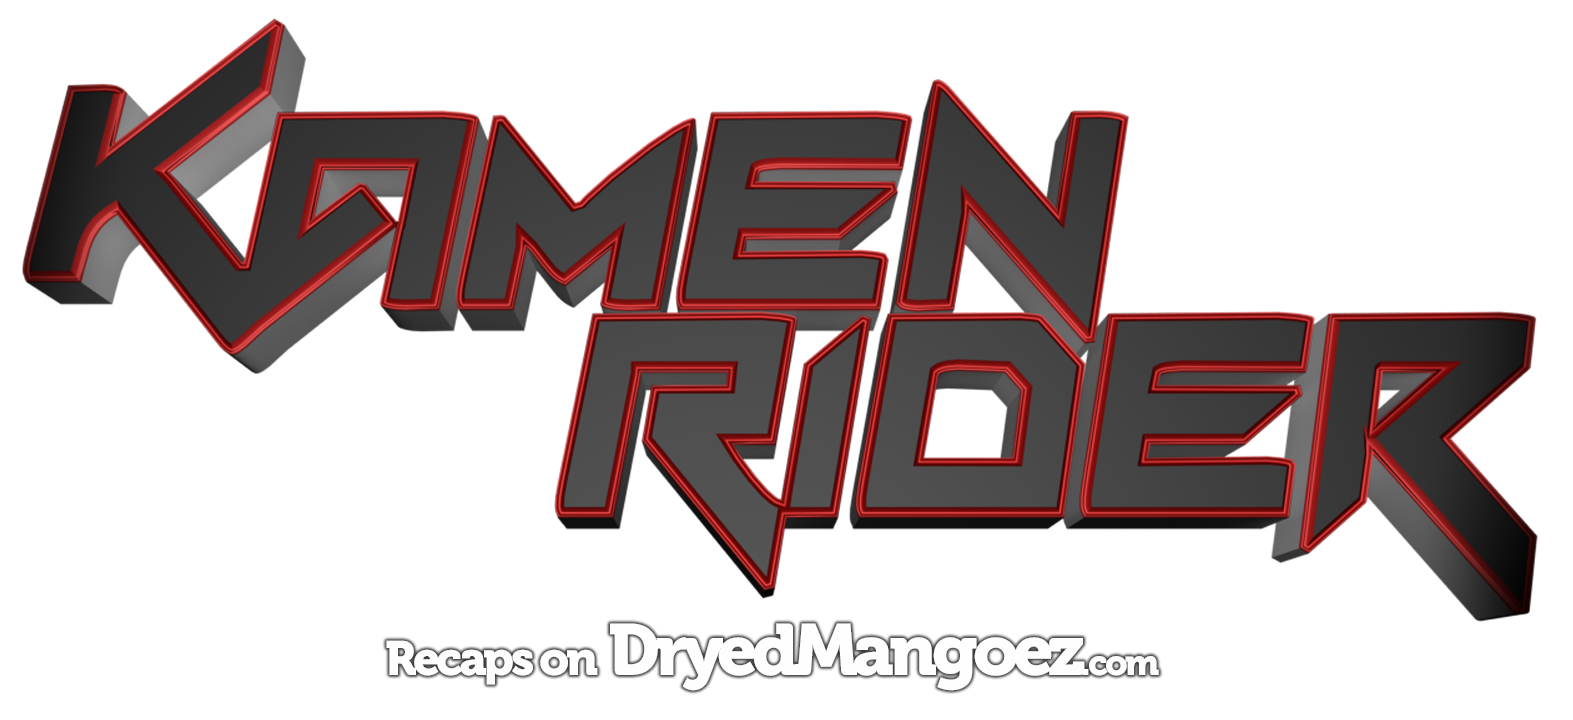 Kamen Rider on DryedMangoez.com